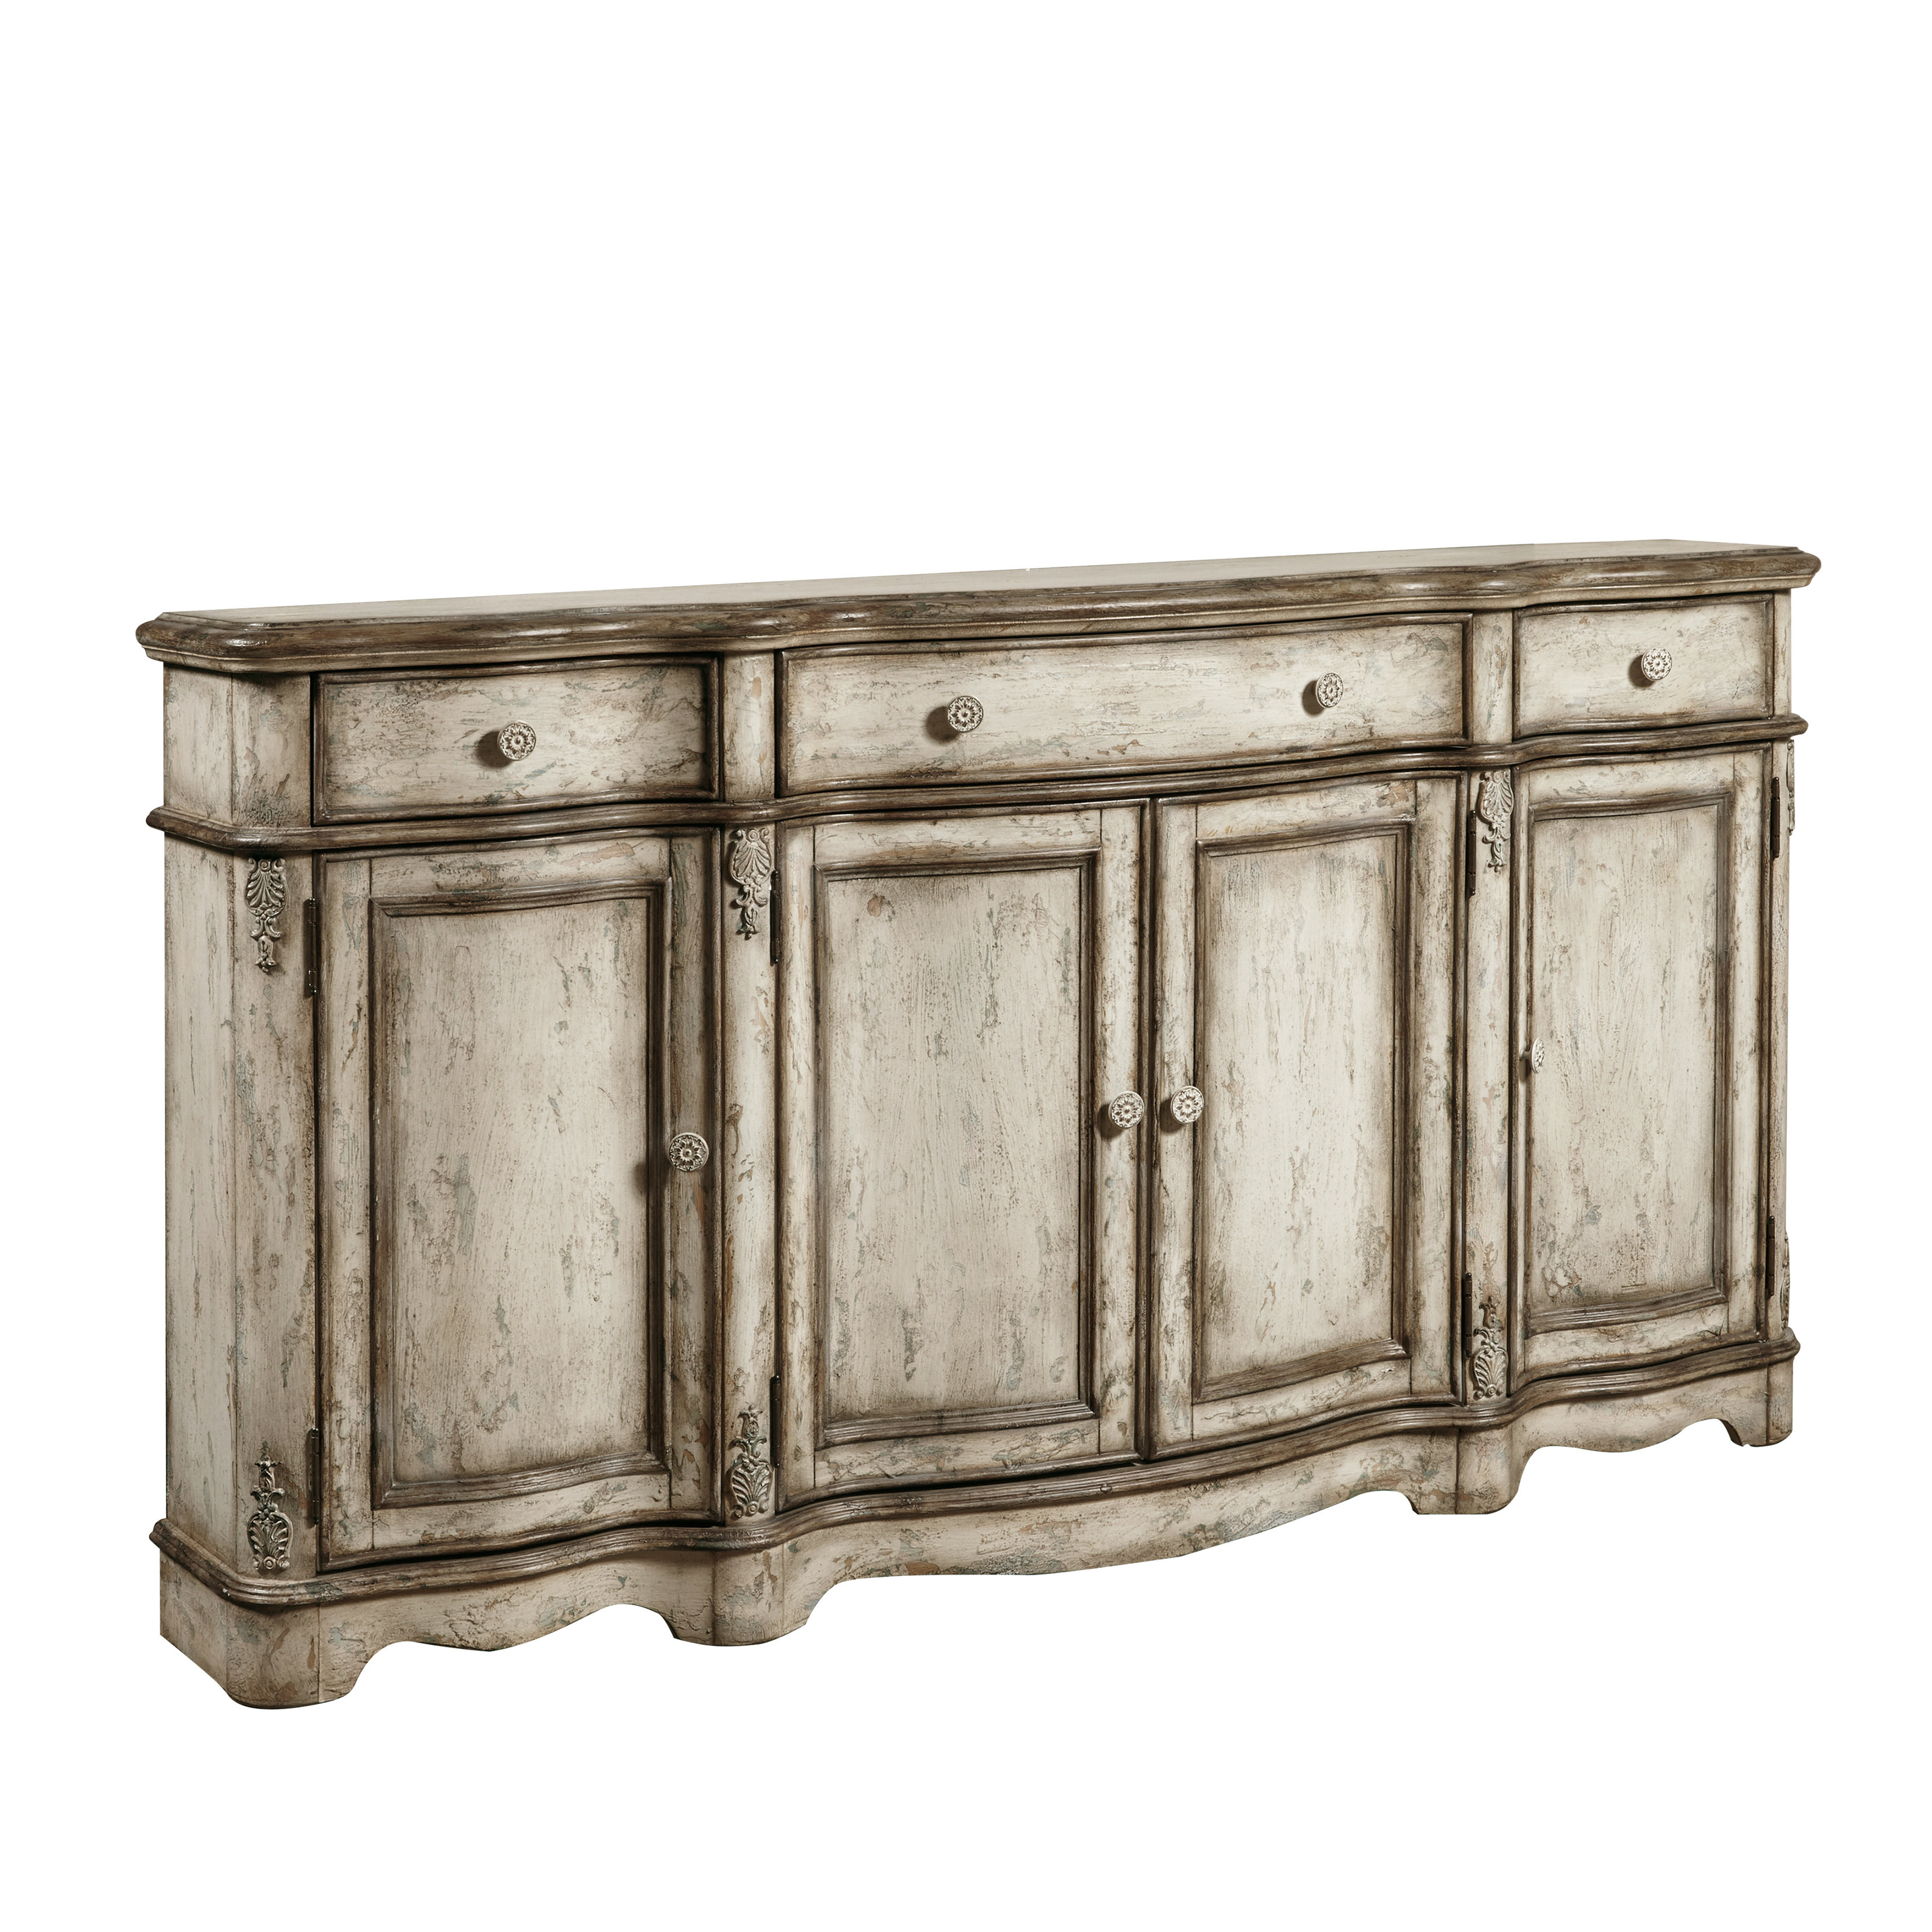 Farmhouse & Rustic Assembled Sideboards & Buffets   Birch Lane With Regard To Rutledge Sideboards (View 11 of 20)